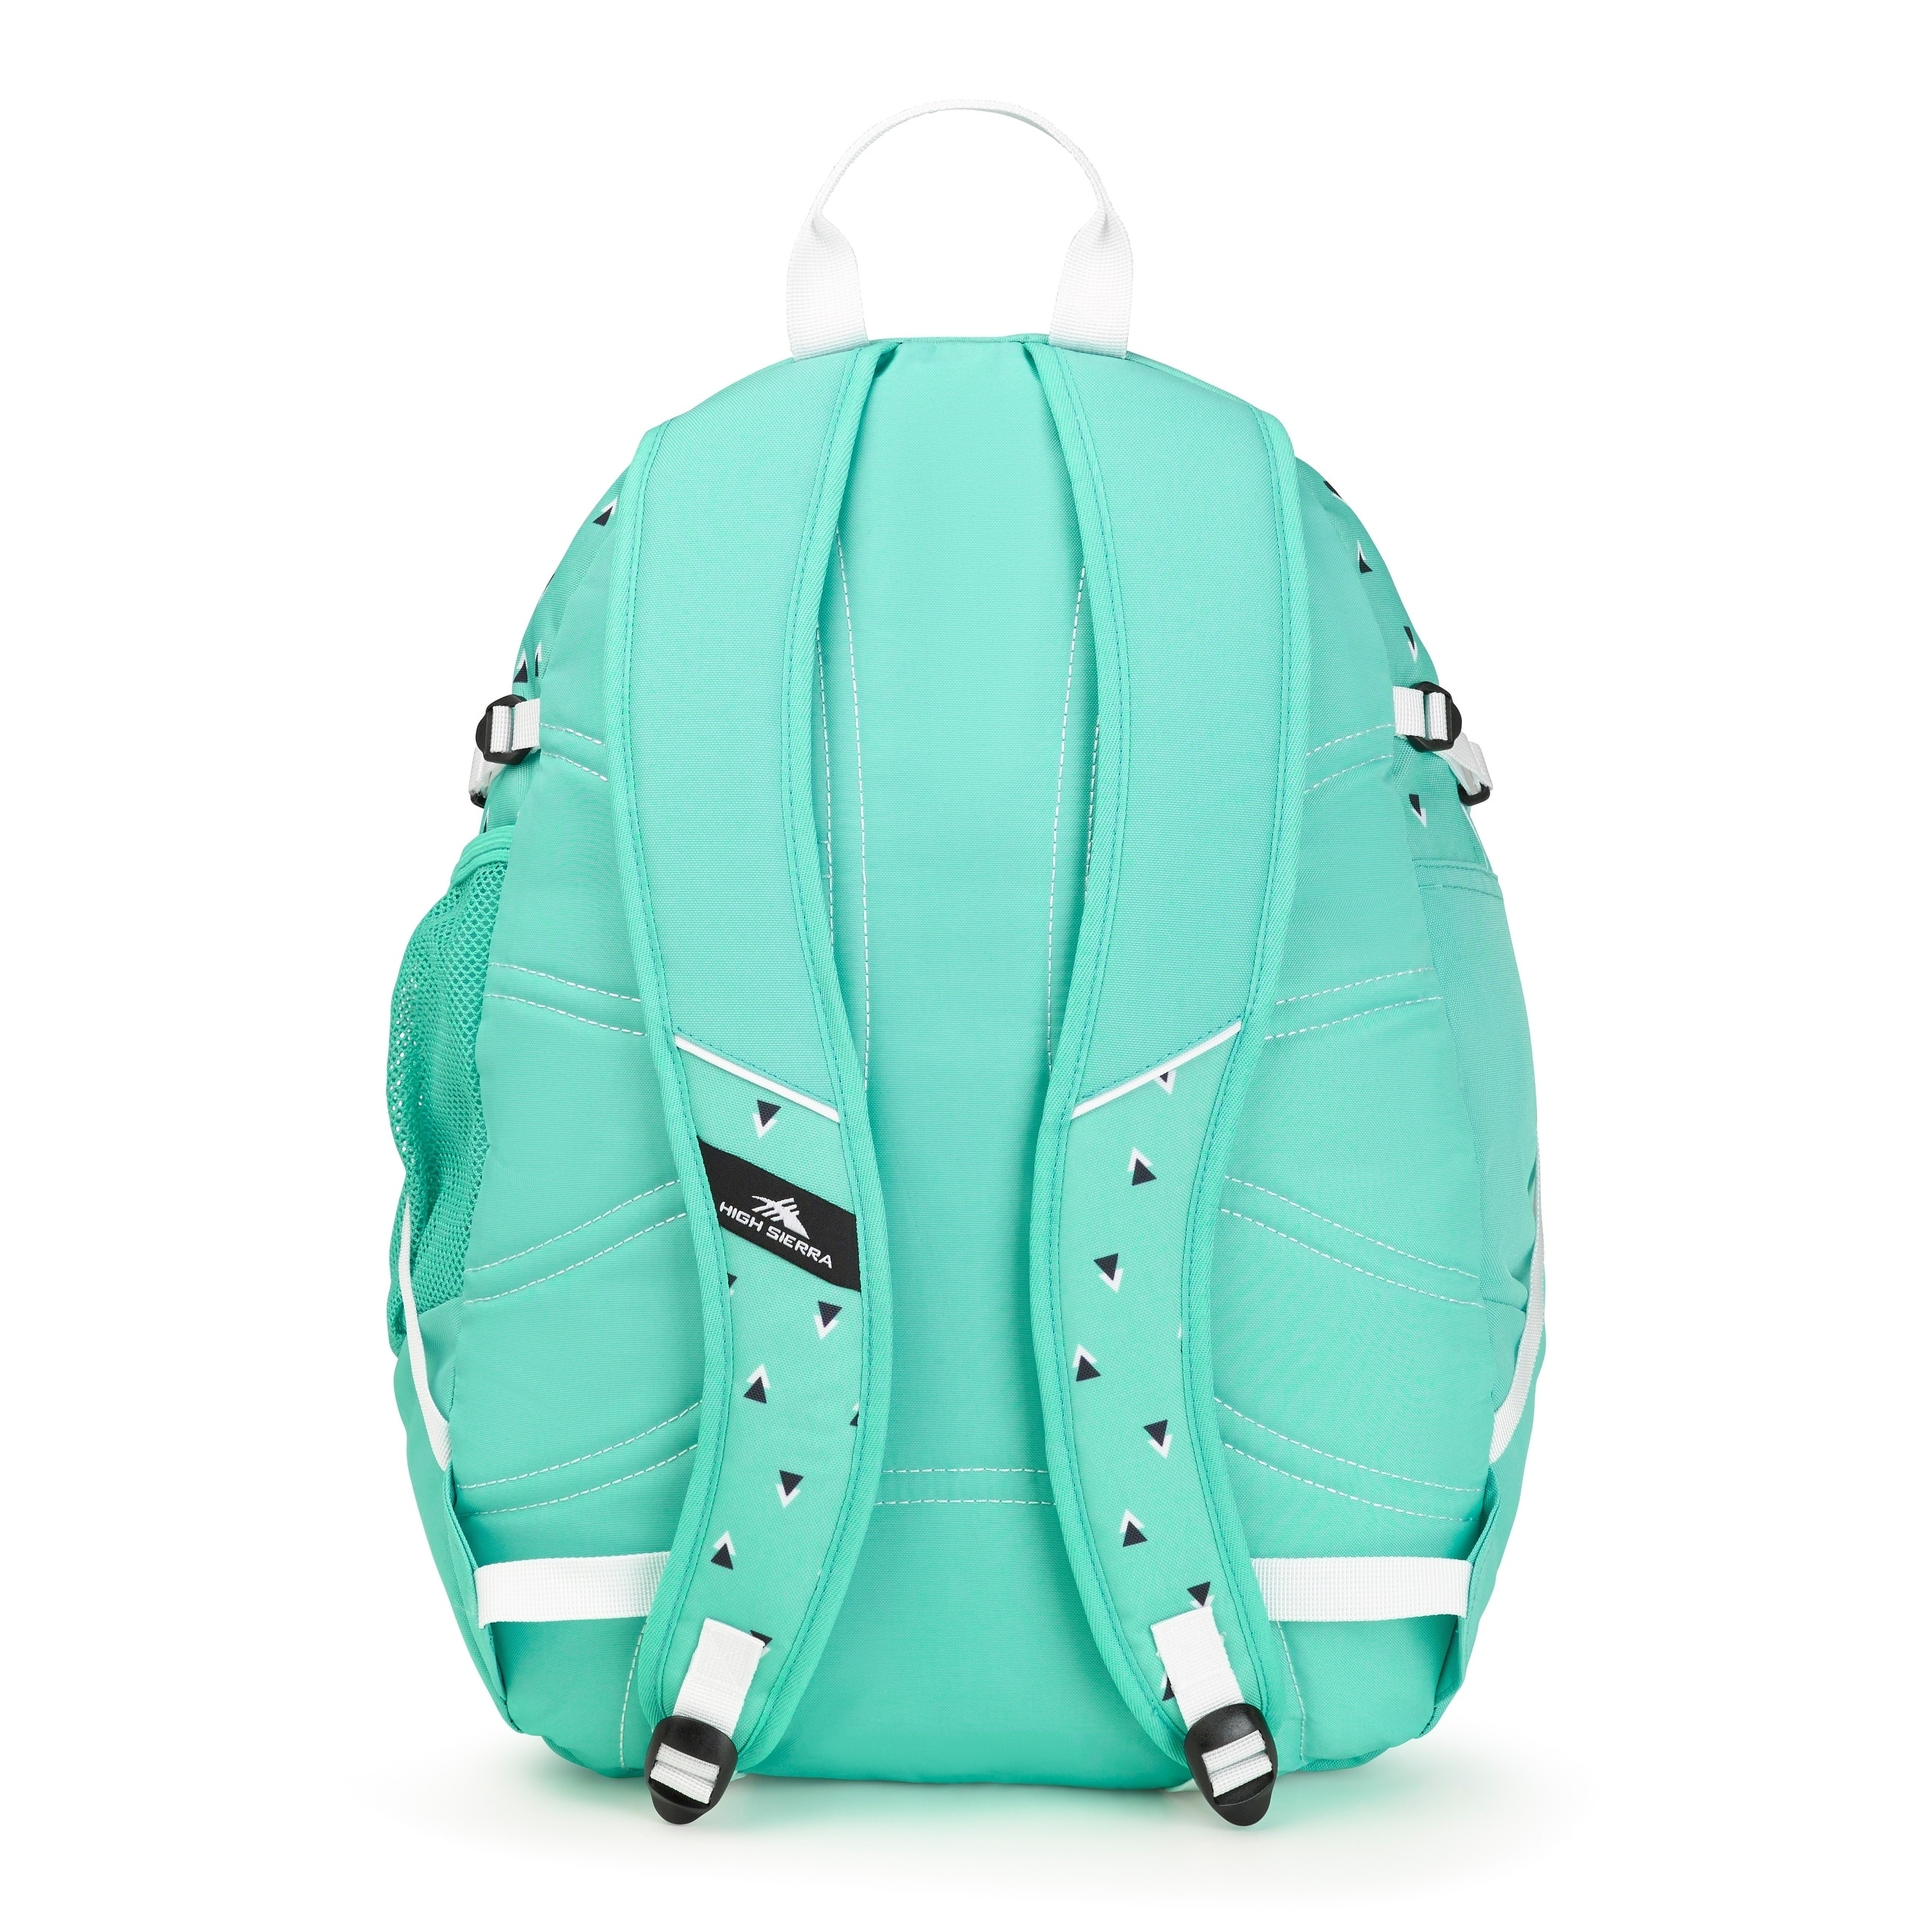 24aa5f987 Shop High Sierra Fatboy Backpack, Tri Geo/Aquamarine/White - Free ...